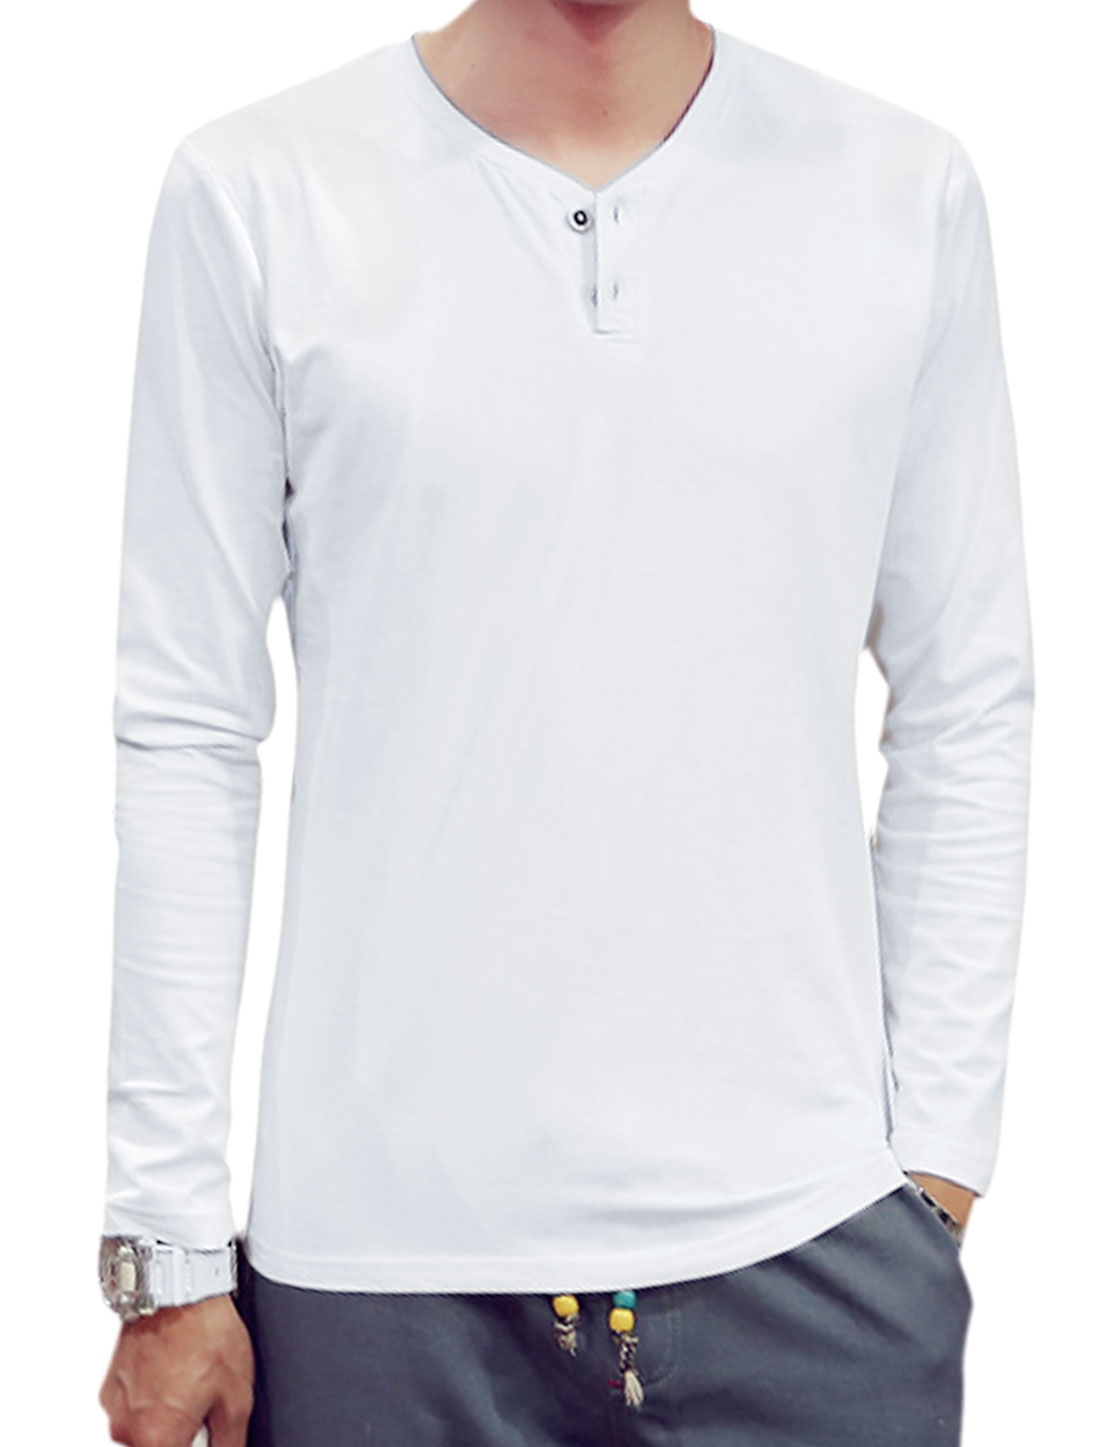 Men Y Neck Long Sleeves Slim Fit T-Shirt White S